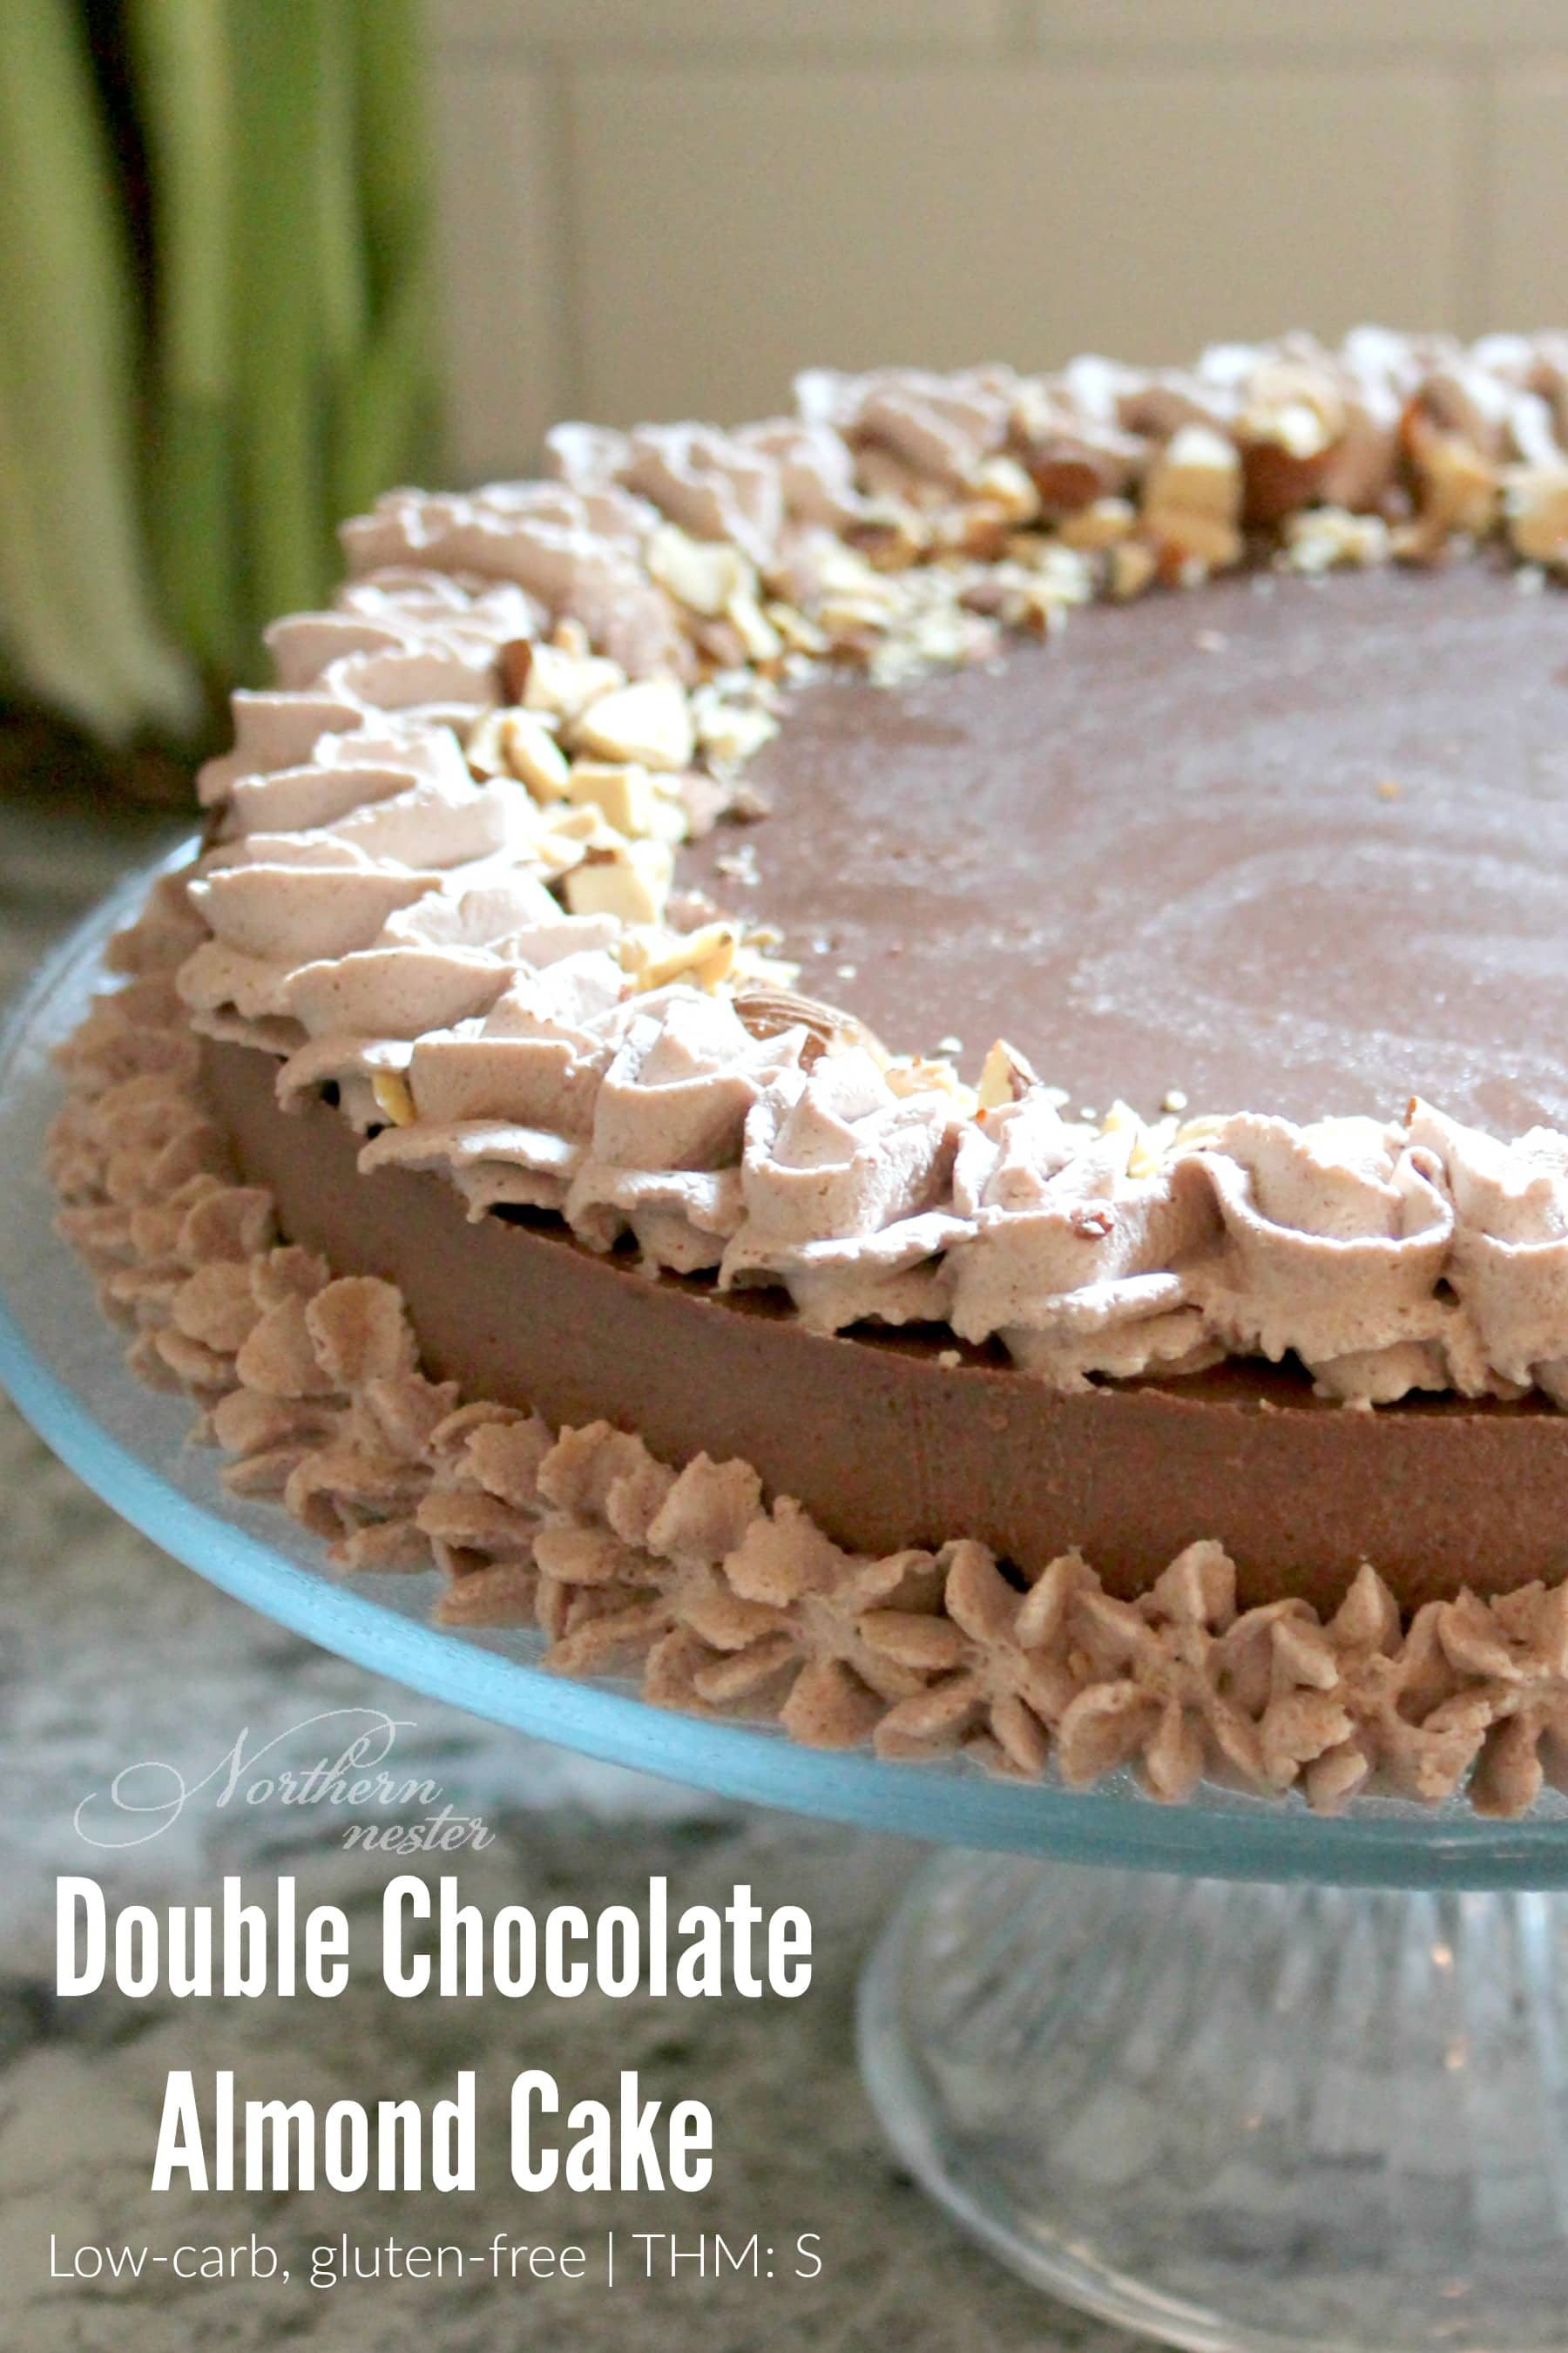 http://northernnester.com/double-chocolate-almond-cake-thm-s/